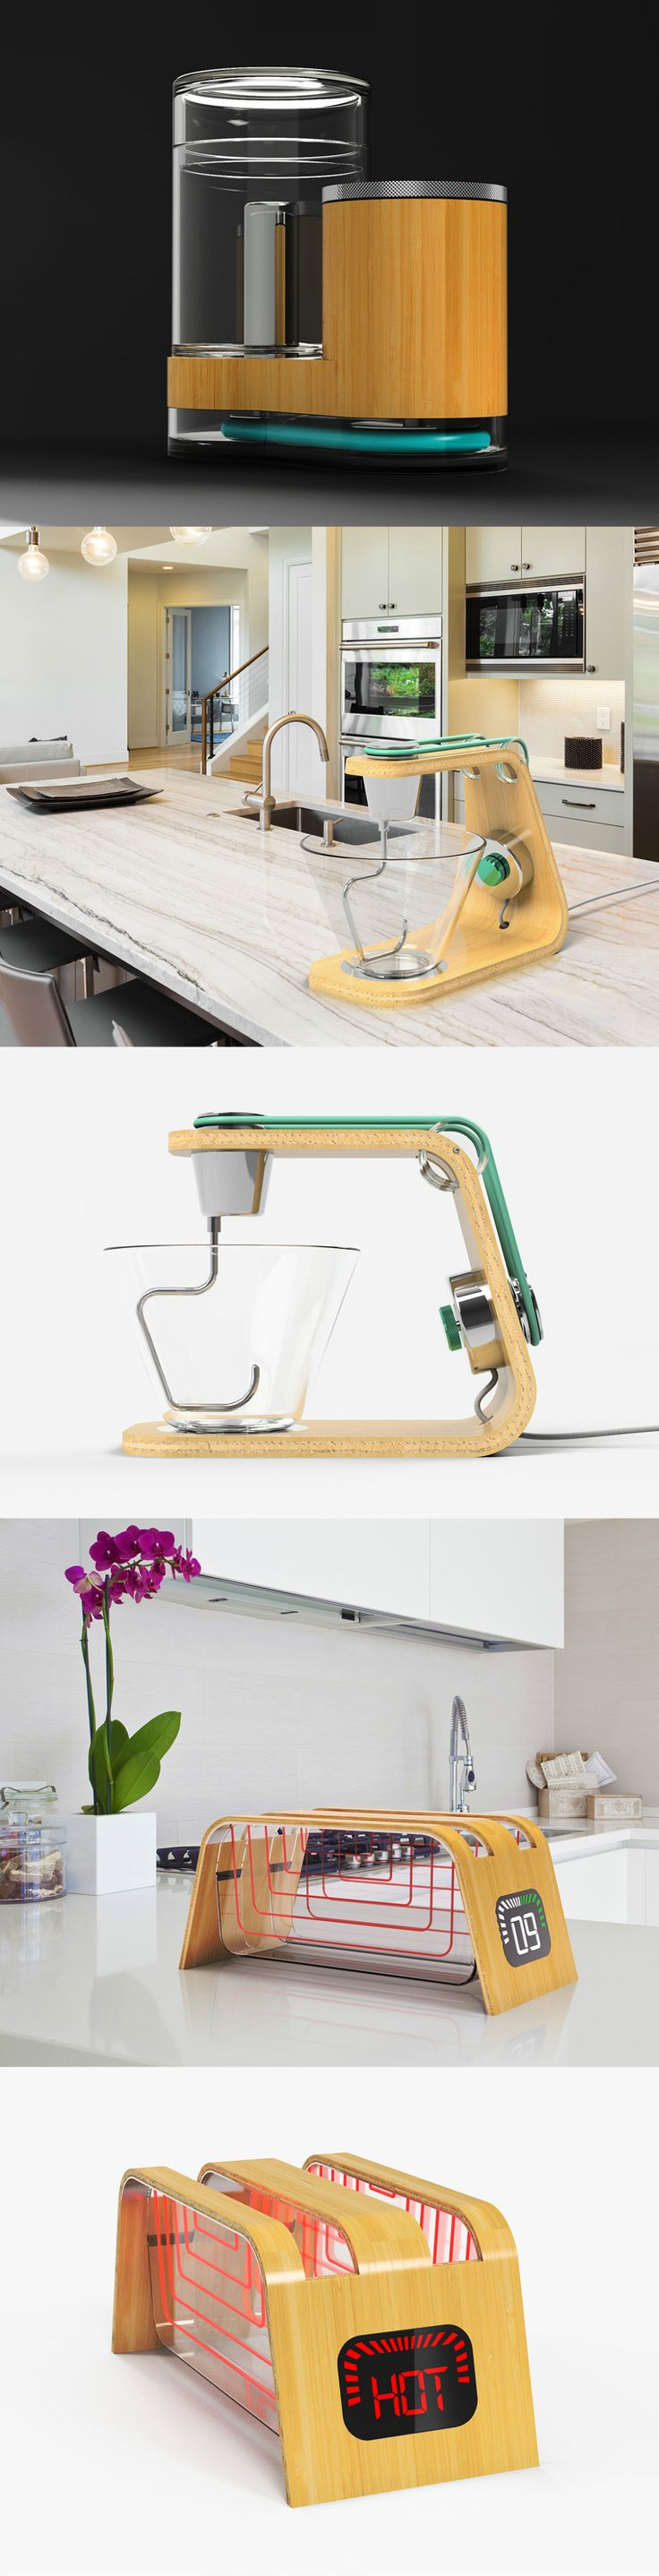 Amazing neat simple and yet sophisticated design for home appliances